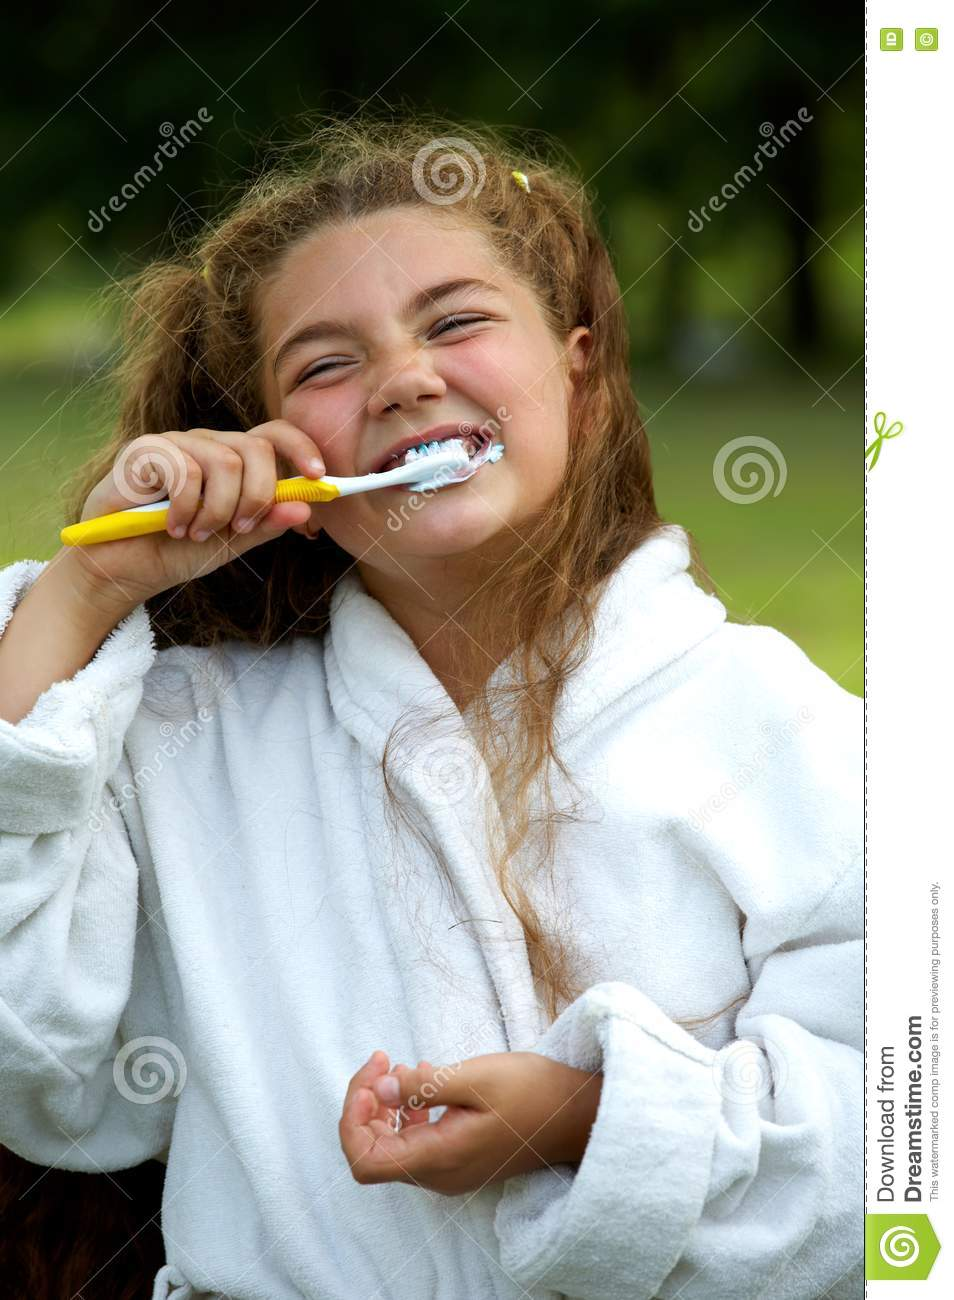 Funny Girl Brushing Teeth Stock Image Image Of